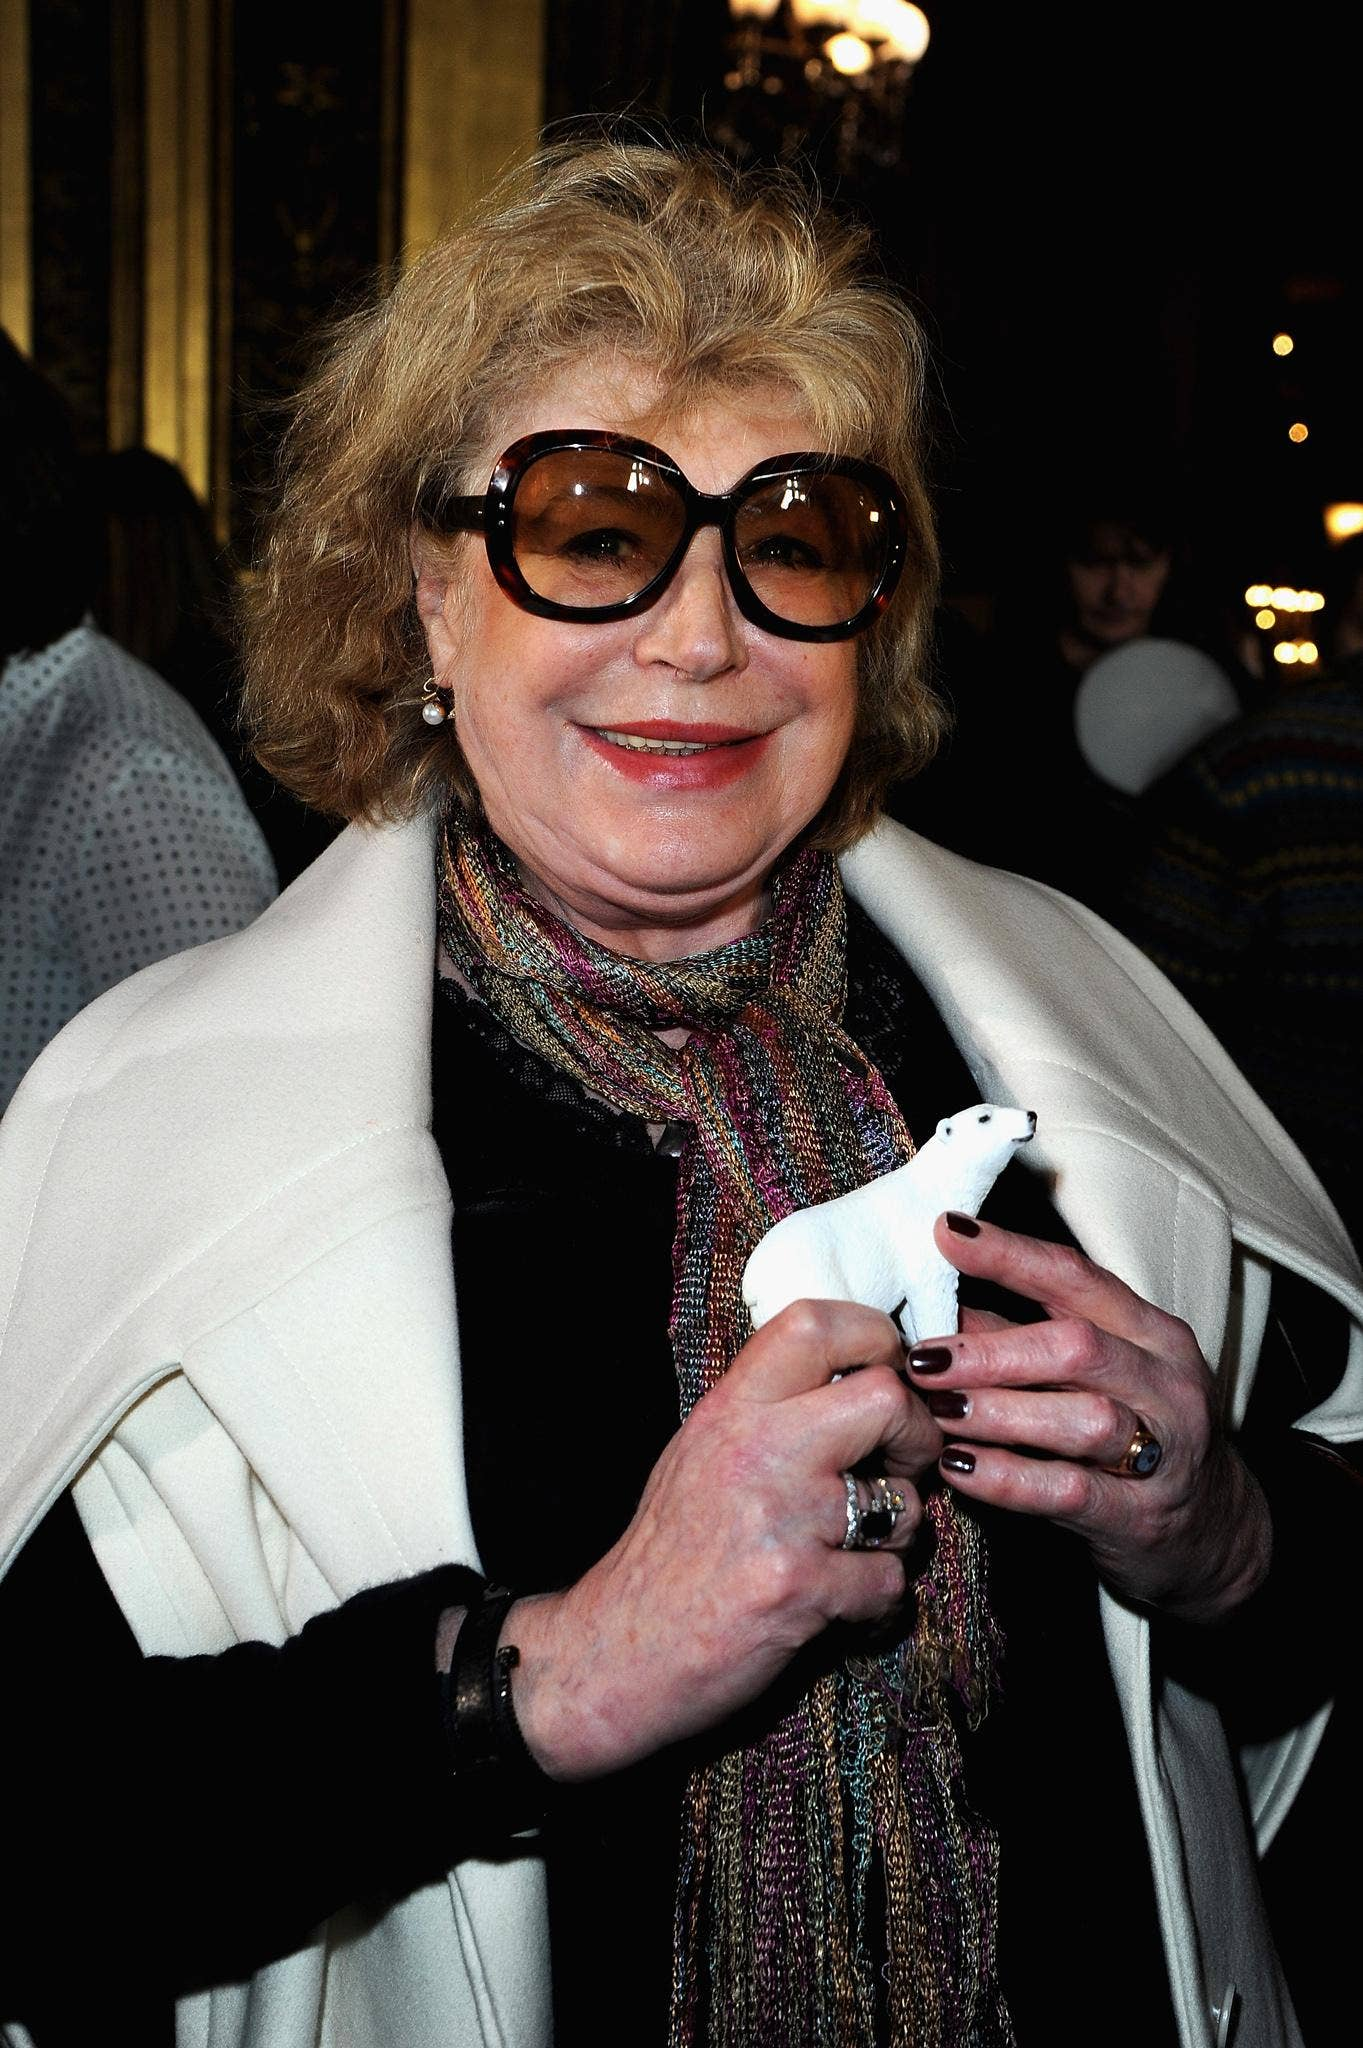 Marianne Faithfull pictured in March 2013